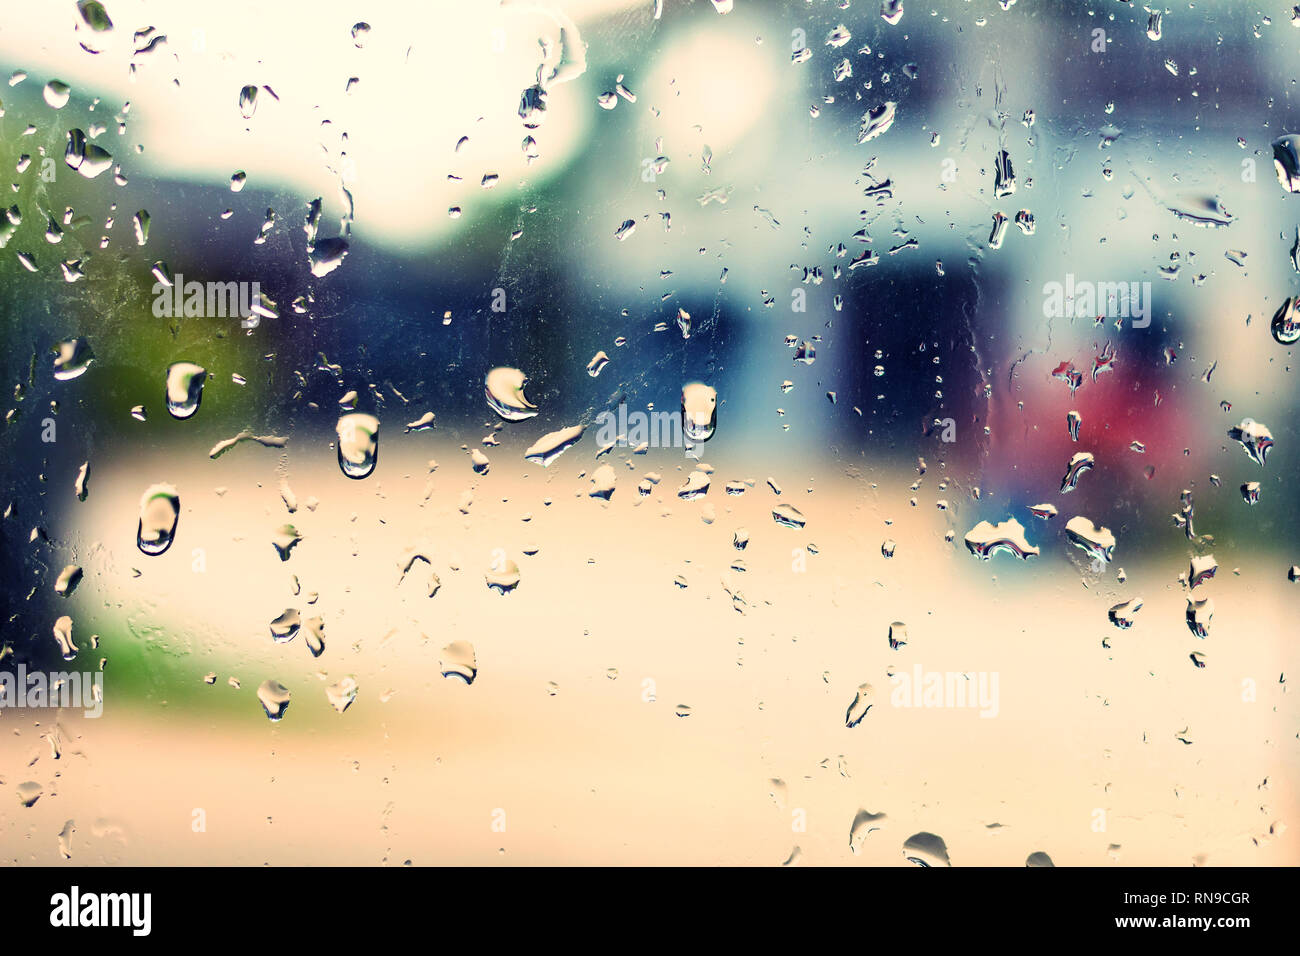 Drops of rain on glass background made with vintage Tones - Stock Image